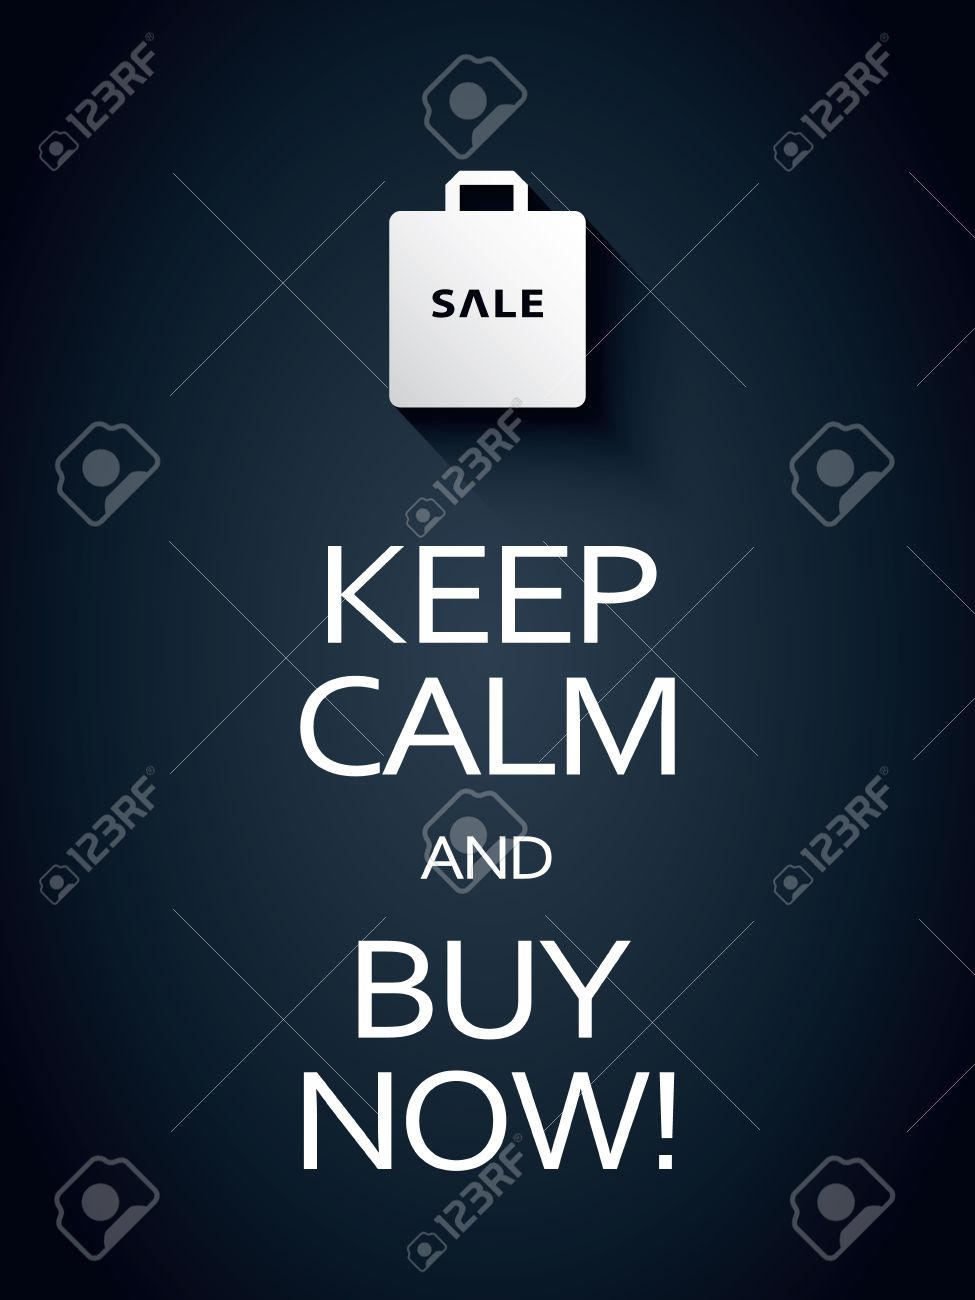 Keep Calm And Buy Now Sale Poster Template With Shopping Bag – Sales Promotion Template